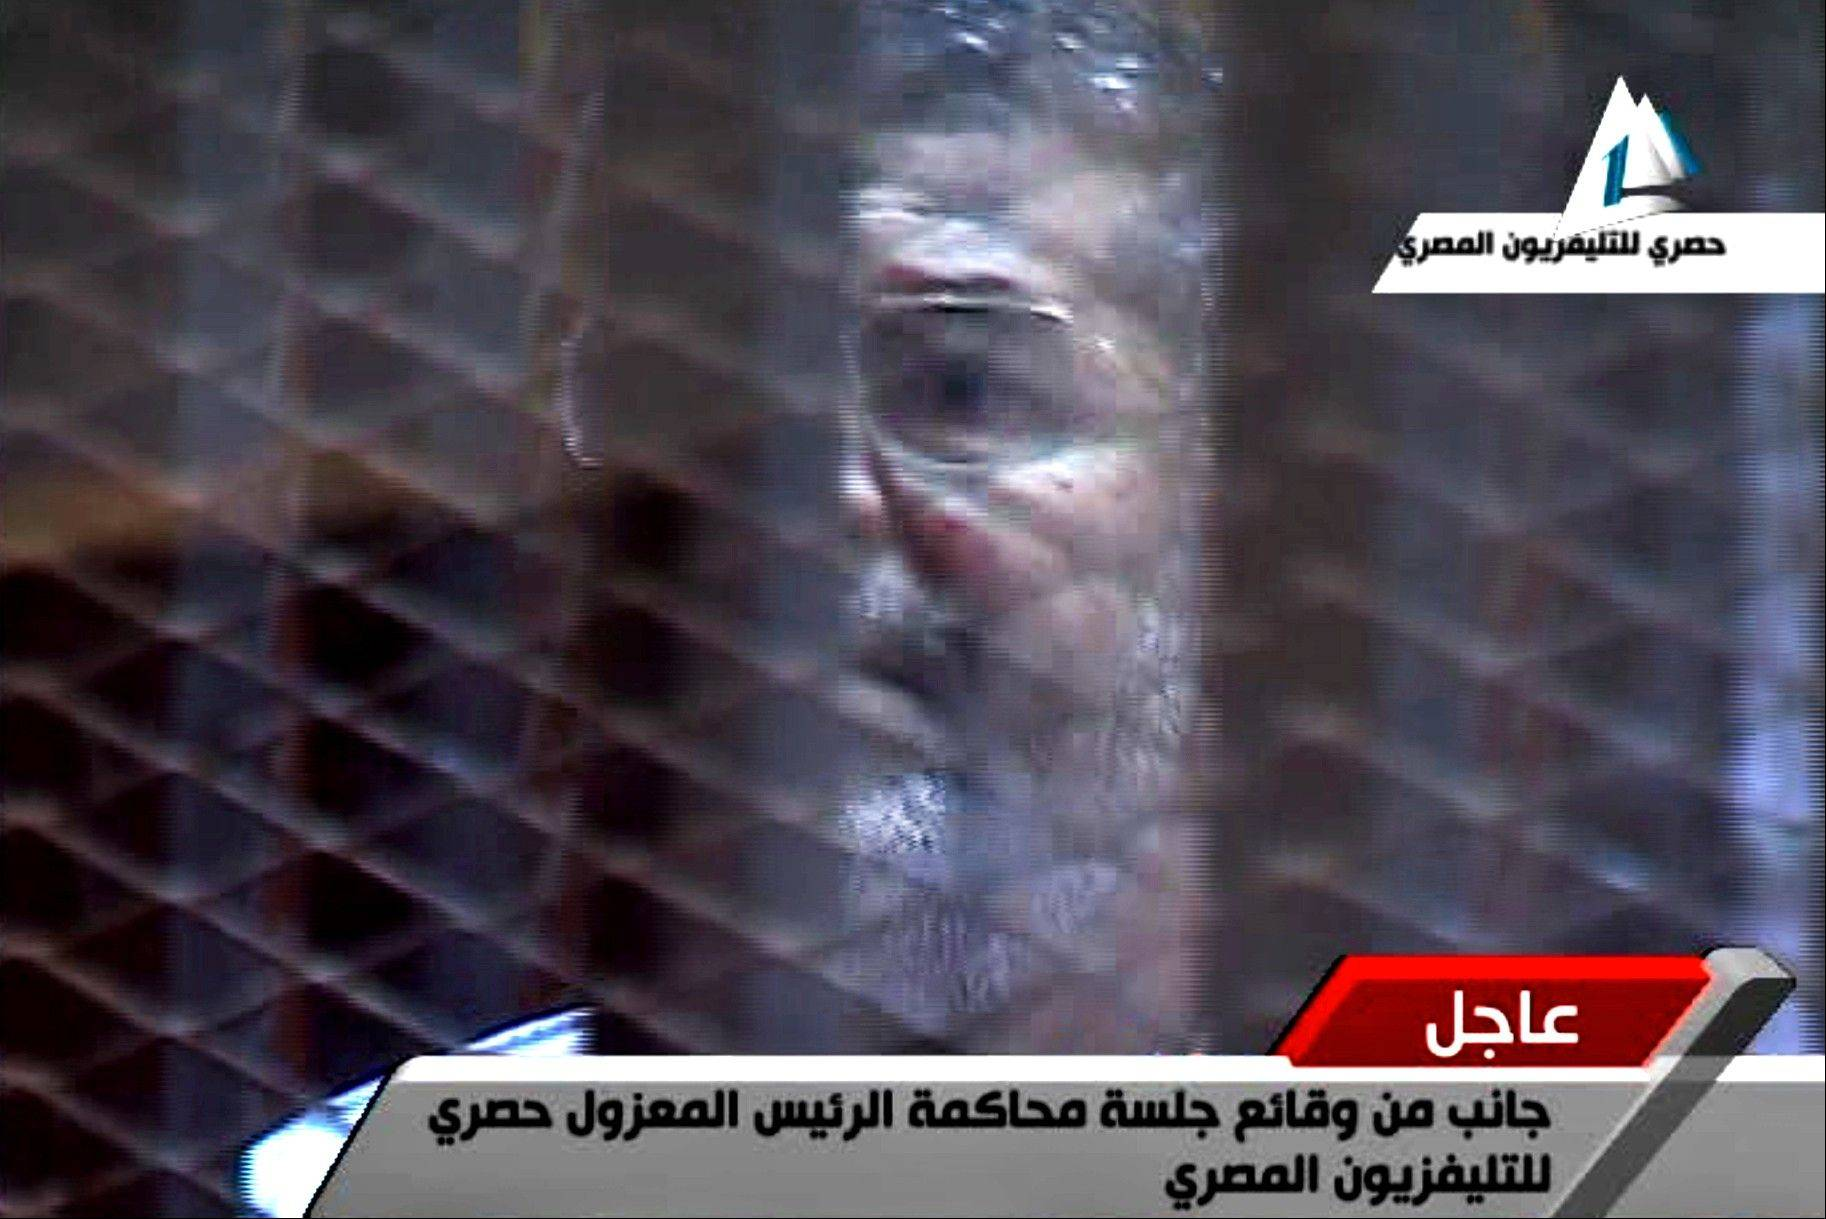 Egypt's toppled President Mohammed Morsi stands inside a glass-encased metal cage in a courtroom in Cairo, Egypt, Tuesday, Jan. 28. 2014. Morsi was separated from other defendants for the start of a new trial Tuesday over charges from prison breaks during the country's 2011 revolution, state television reported.